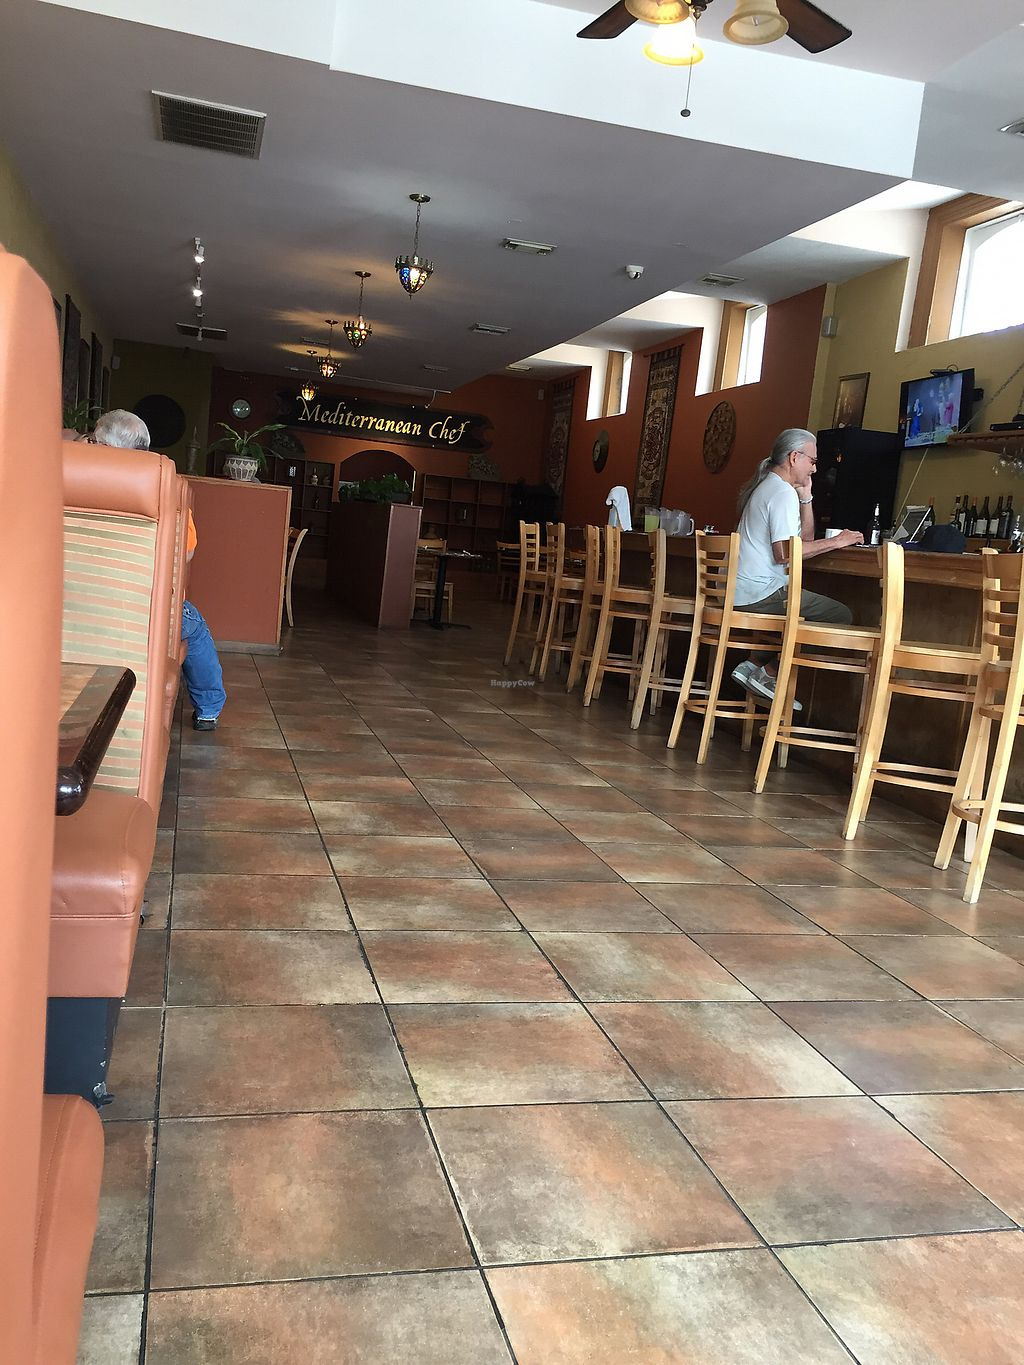 """Photo of CLOSED: Mediterranean Chef  by <a href=""""/members/profile/Petunia"""">Petunia</a> <br/>Not to impressive  <br/> March 3, 2018  - <a href='/contact/abuse/image/11662/366268'>Report</a>"""